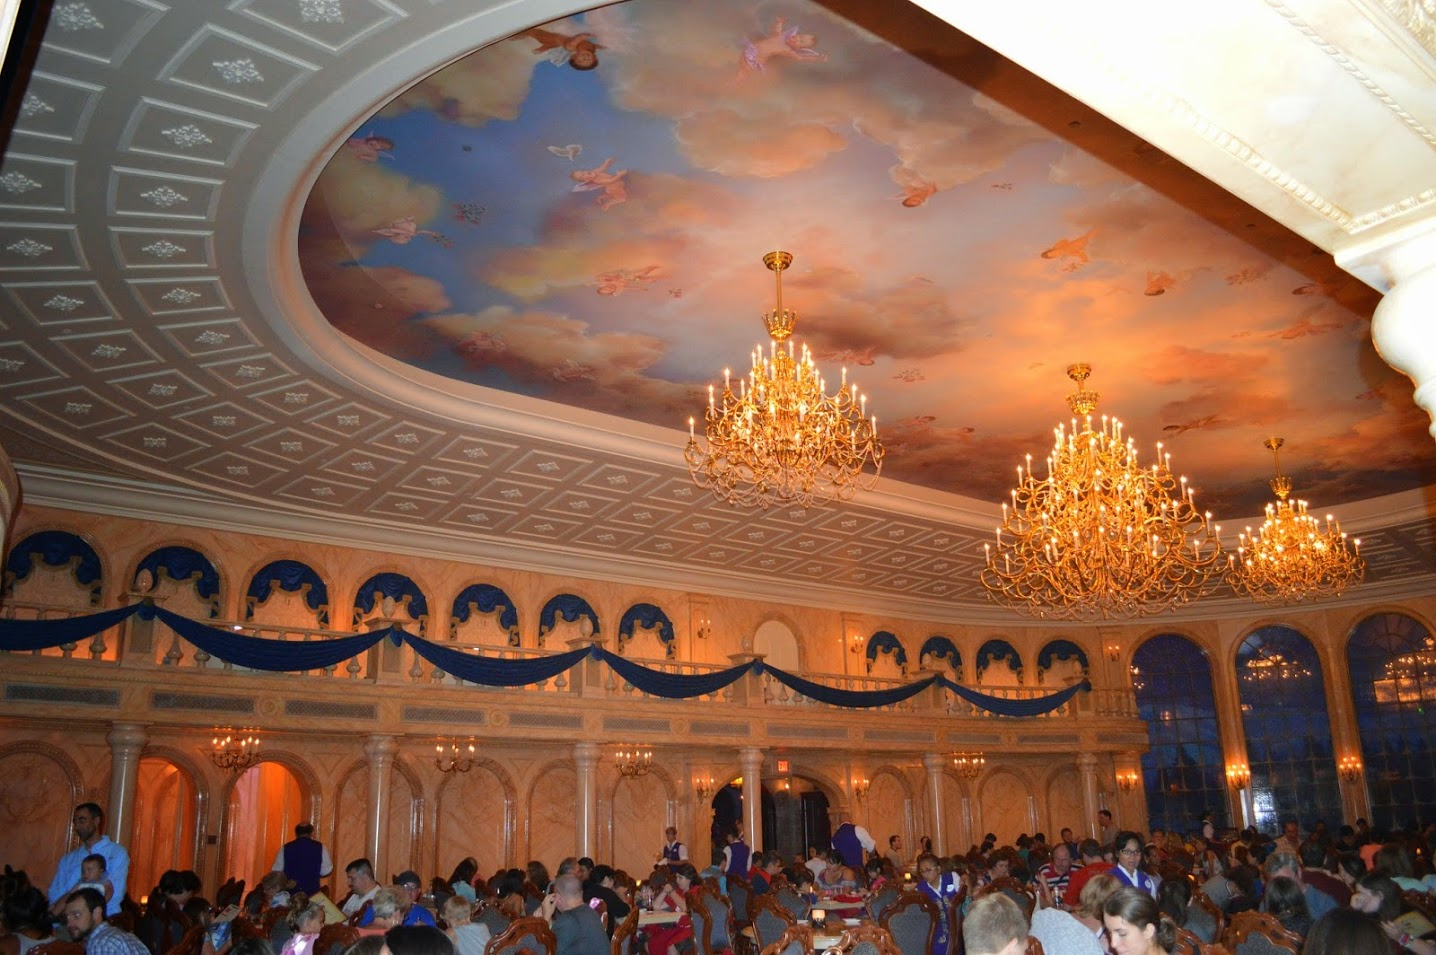 Top 10 Romantic Restaurants At Walt Disney World For Valentines Day